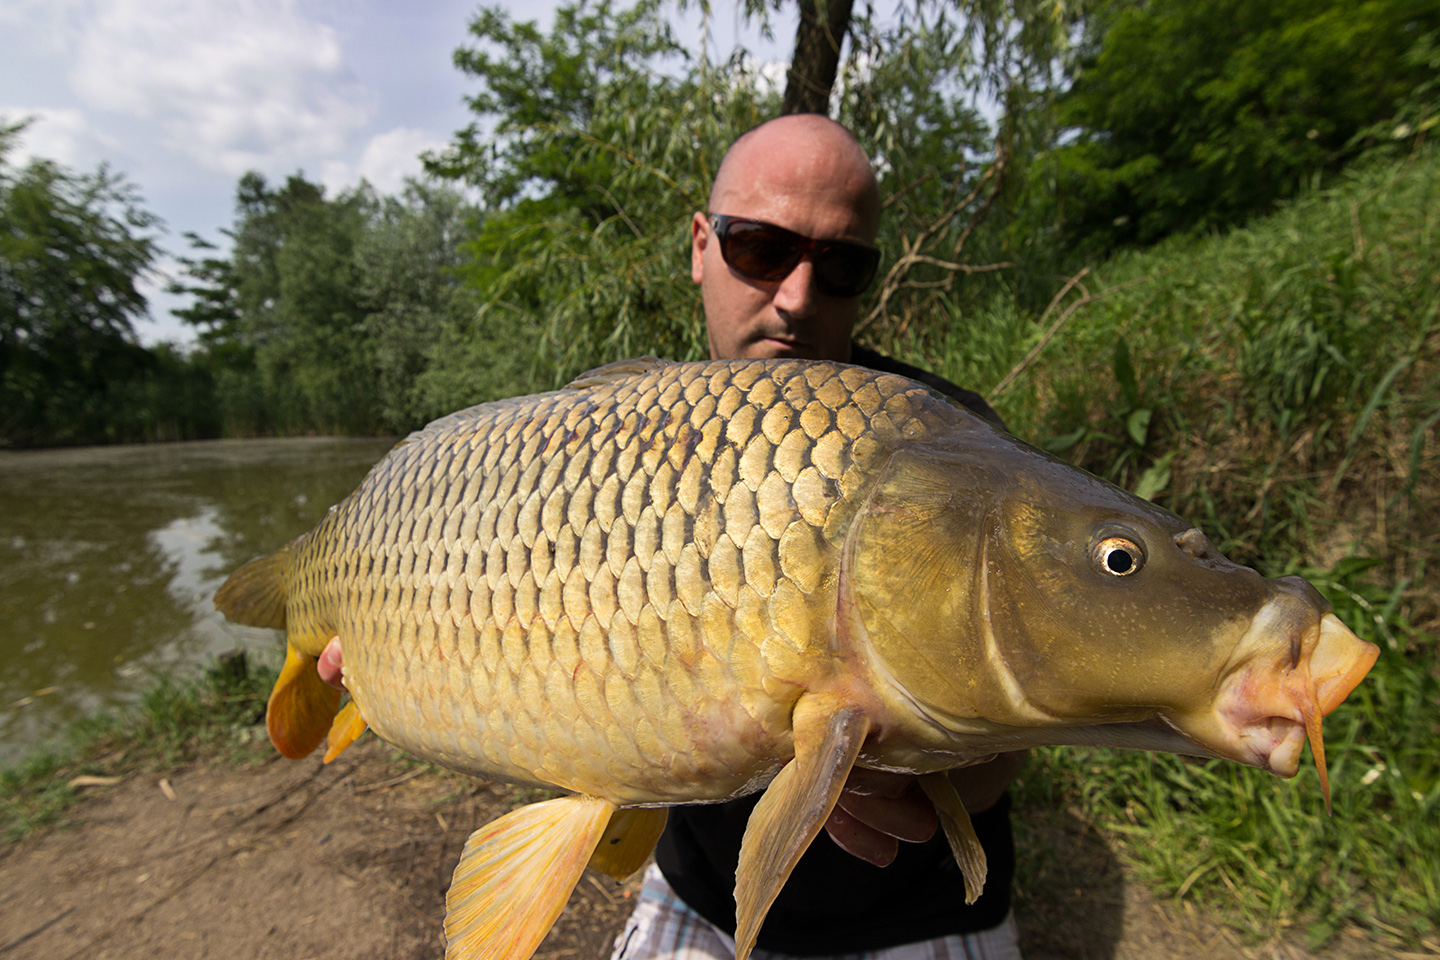 An anglers holding a large specimen Carp on a river bank